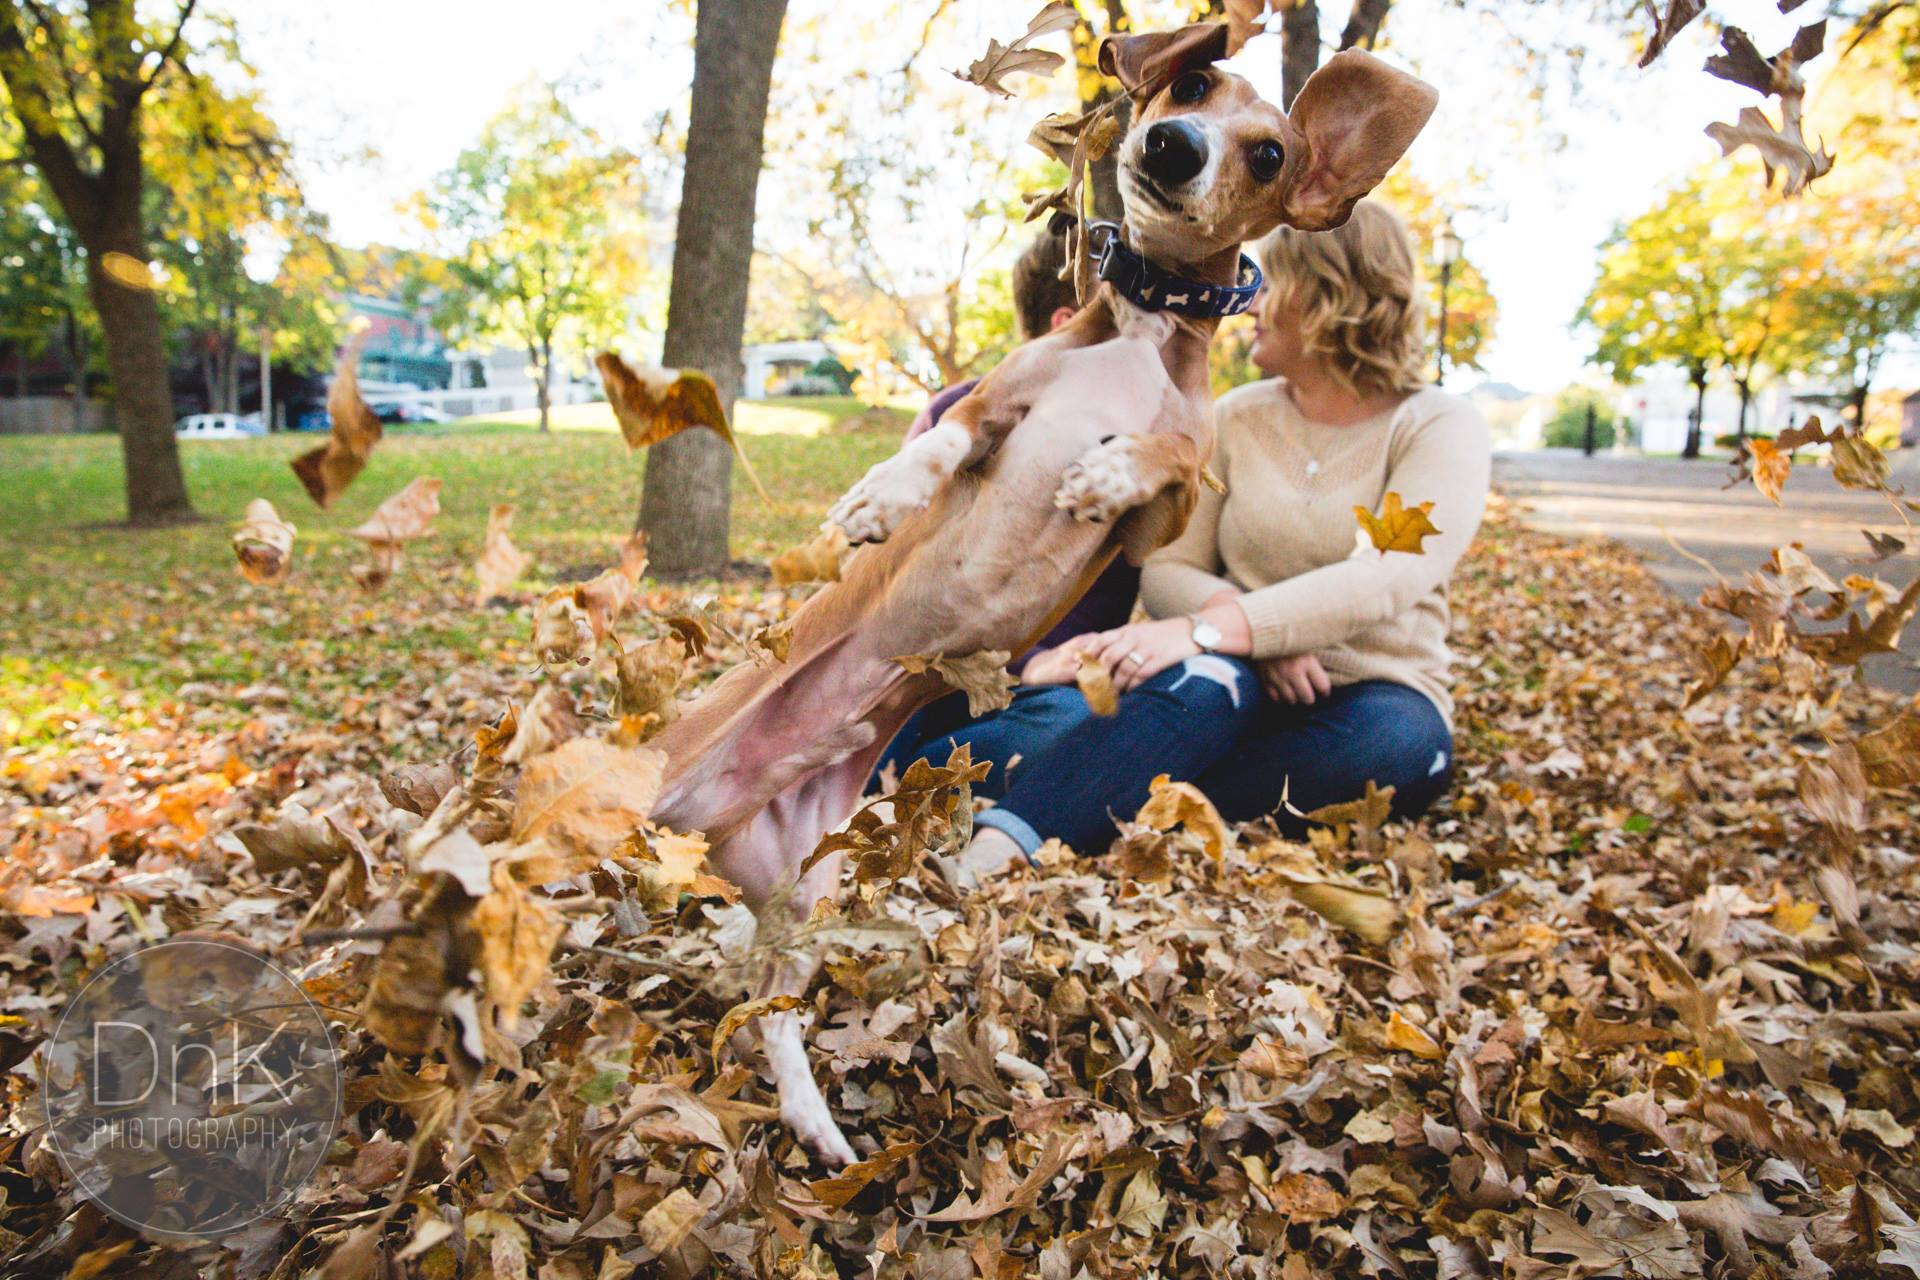 This dog photobombed his owner's engagement pix so hard